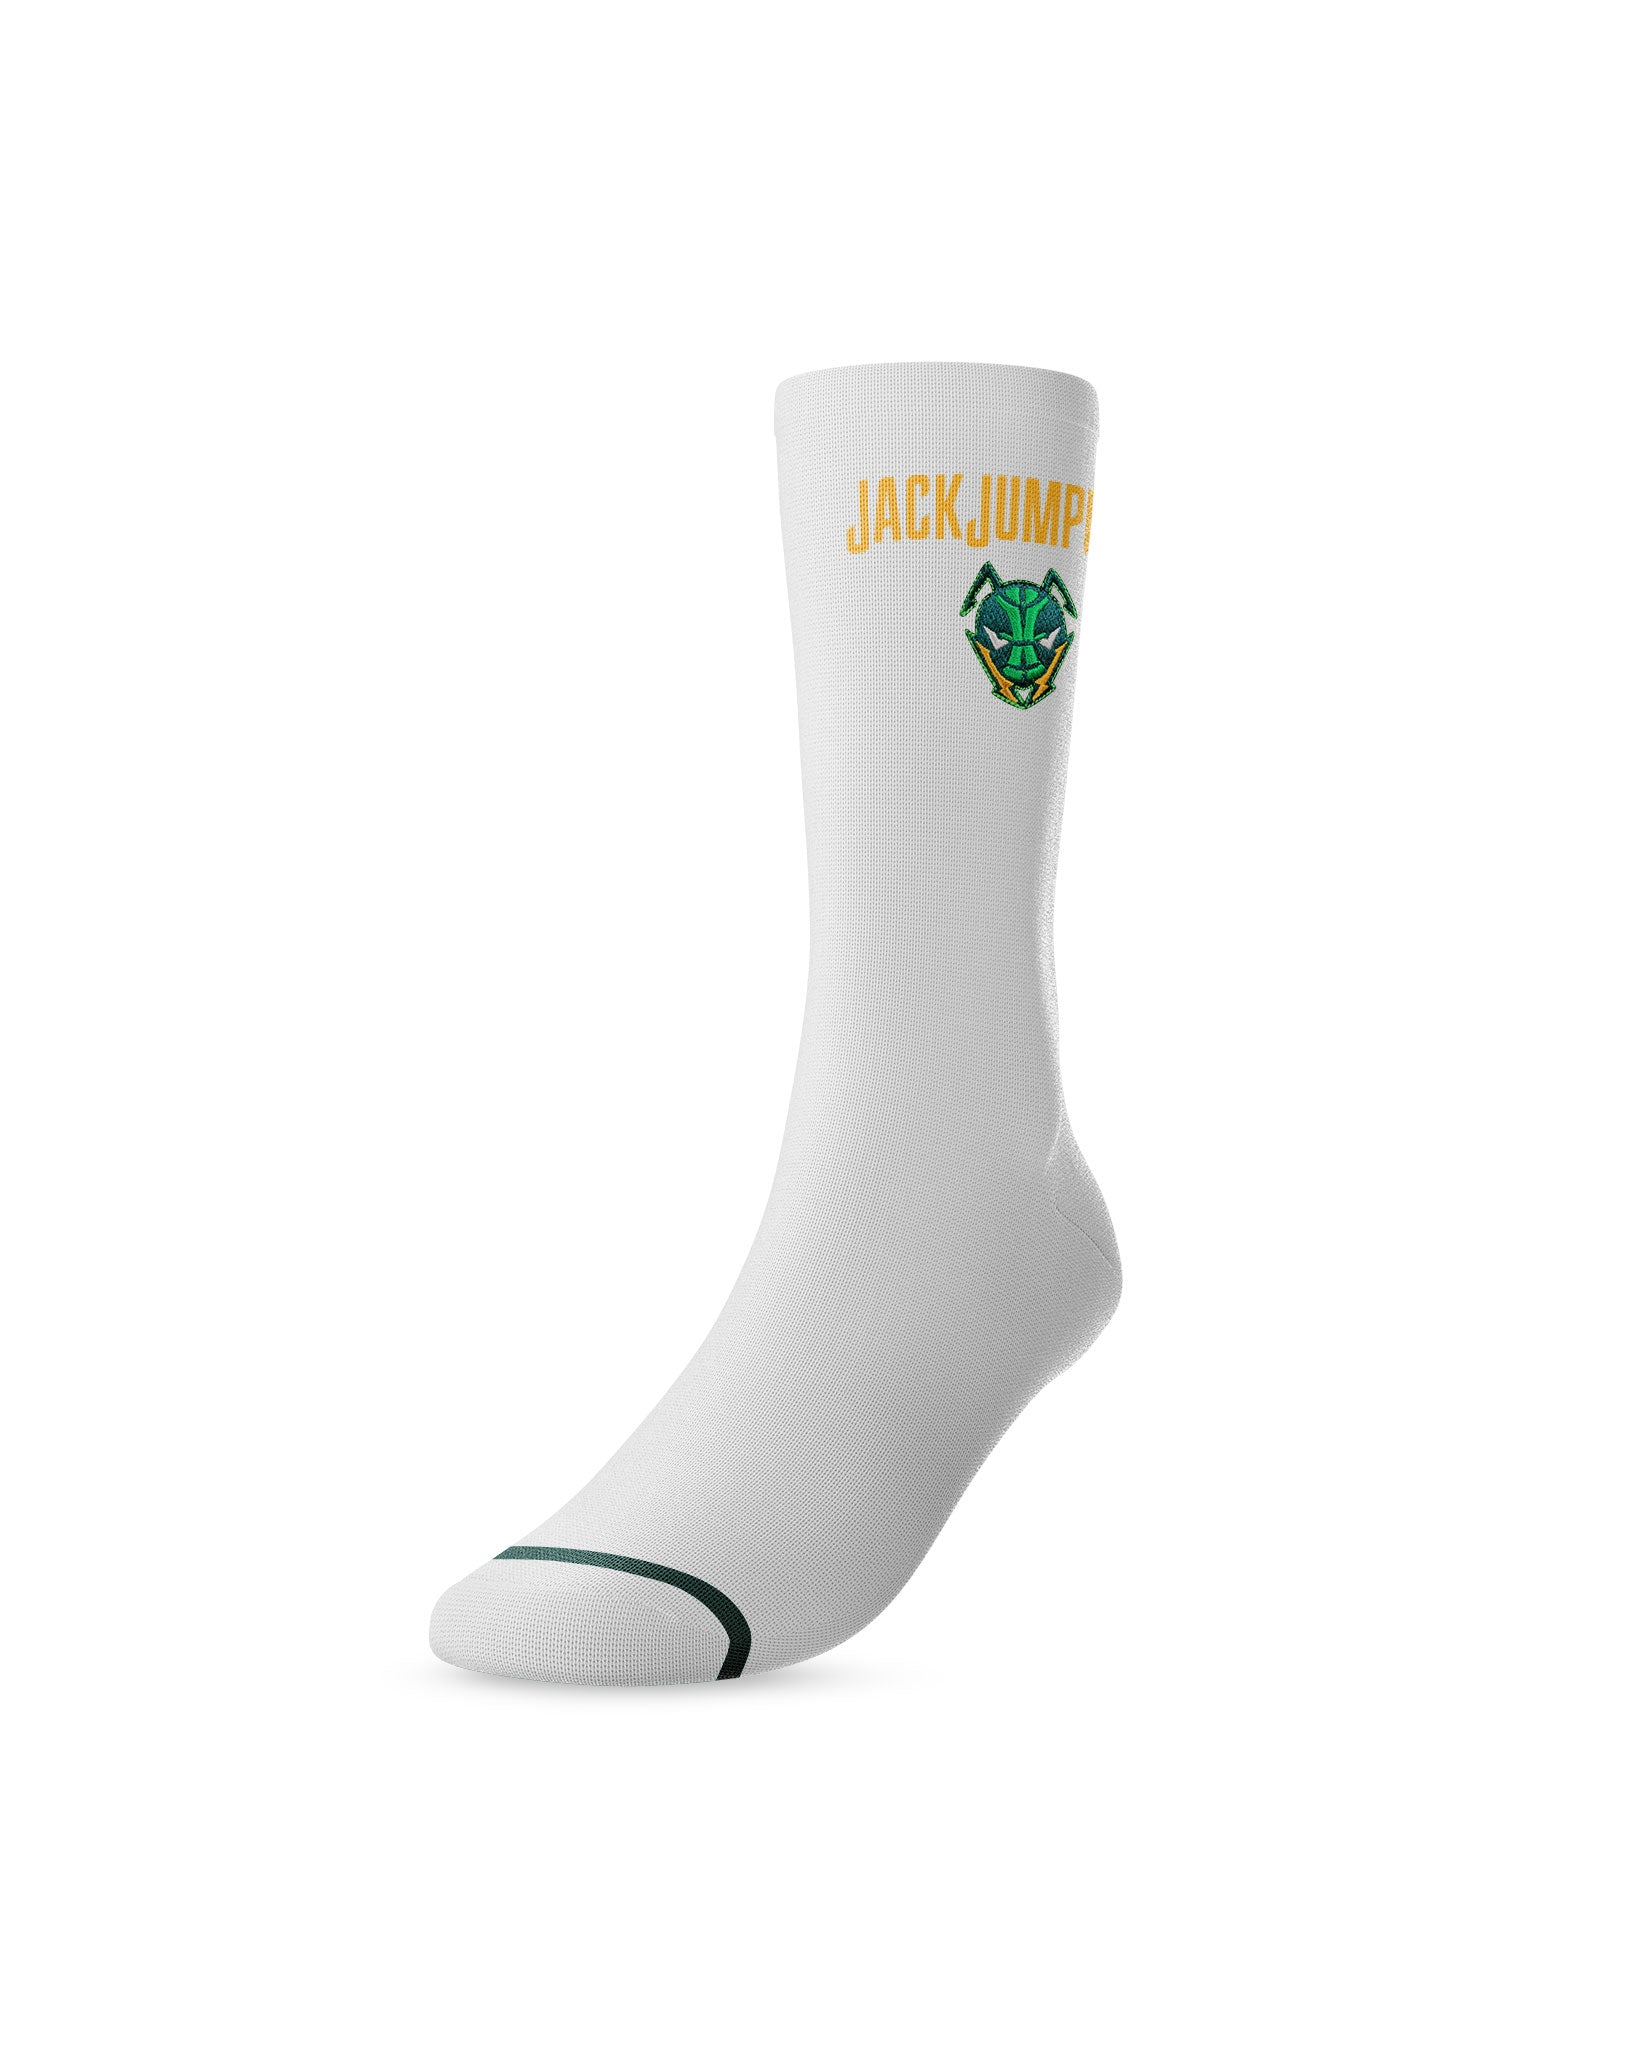 Tasmania JackJumpers 20/21 Socks White